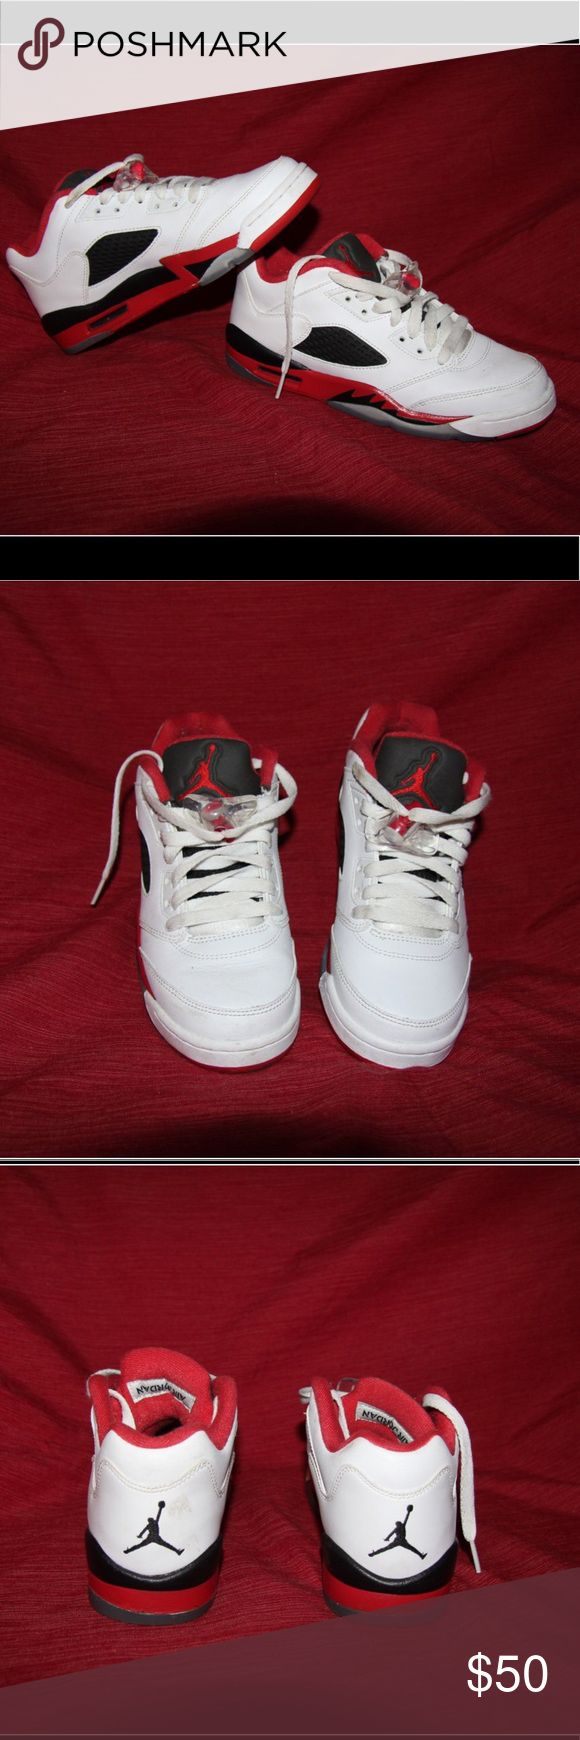 Authentic Nike Air Jordan size 8.5 Bundle 2+ and get %15 discount!   Authentic Jordans, in perfect condition, looking for a new mummy owner Air Jordan Shoes Sneakers